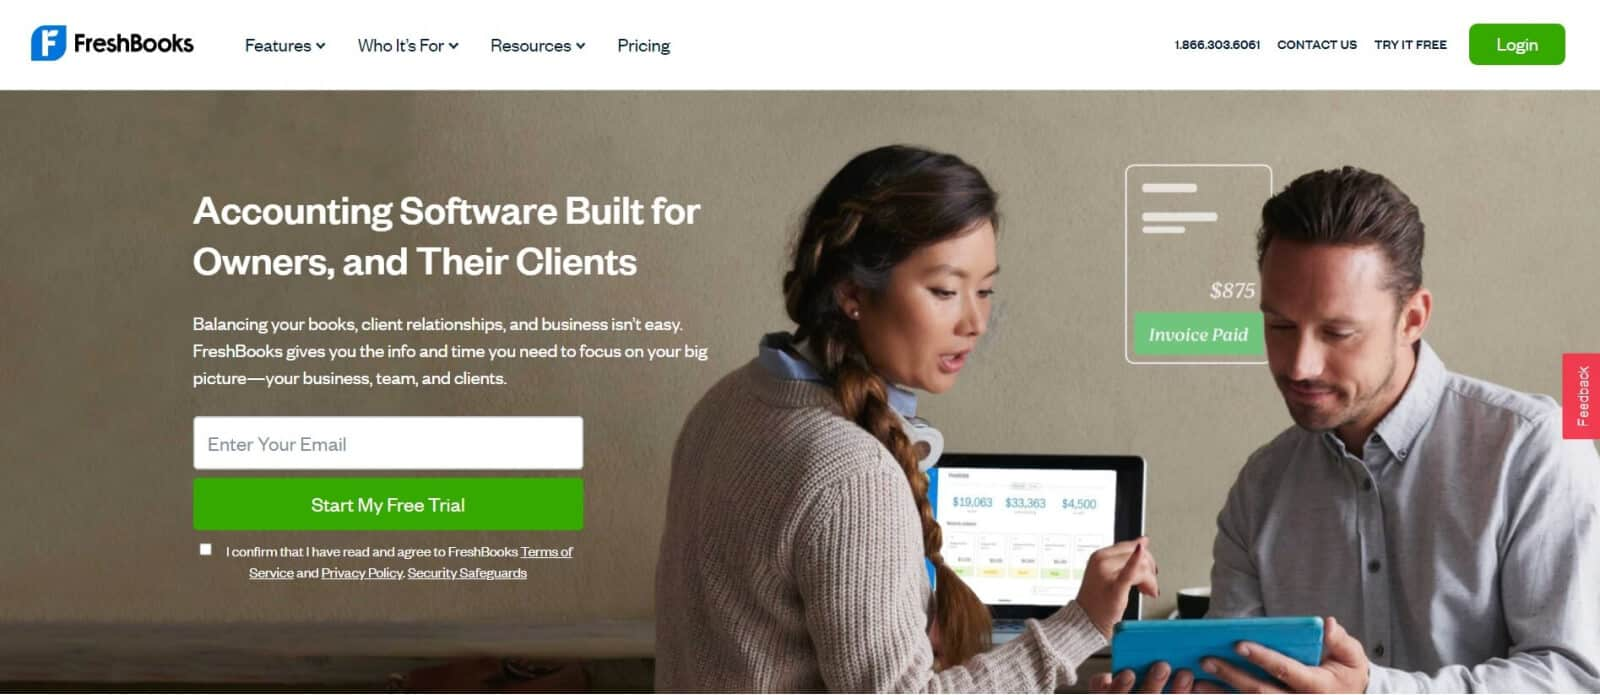 We believe that FreshBooks is the best bookkeeping software for small business owners who don't have any previous accounting experience